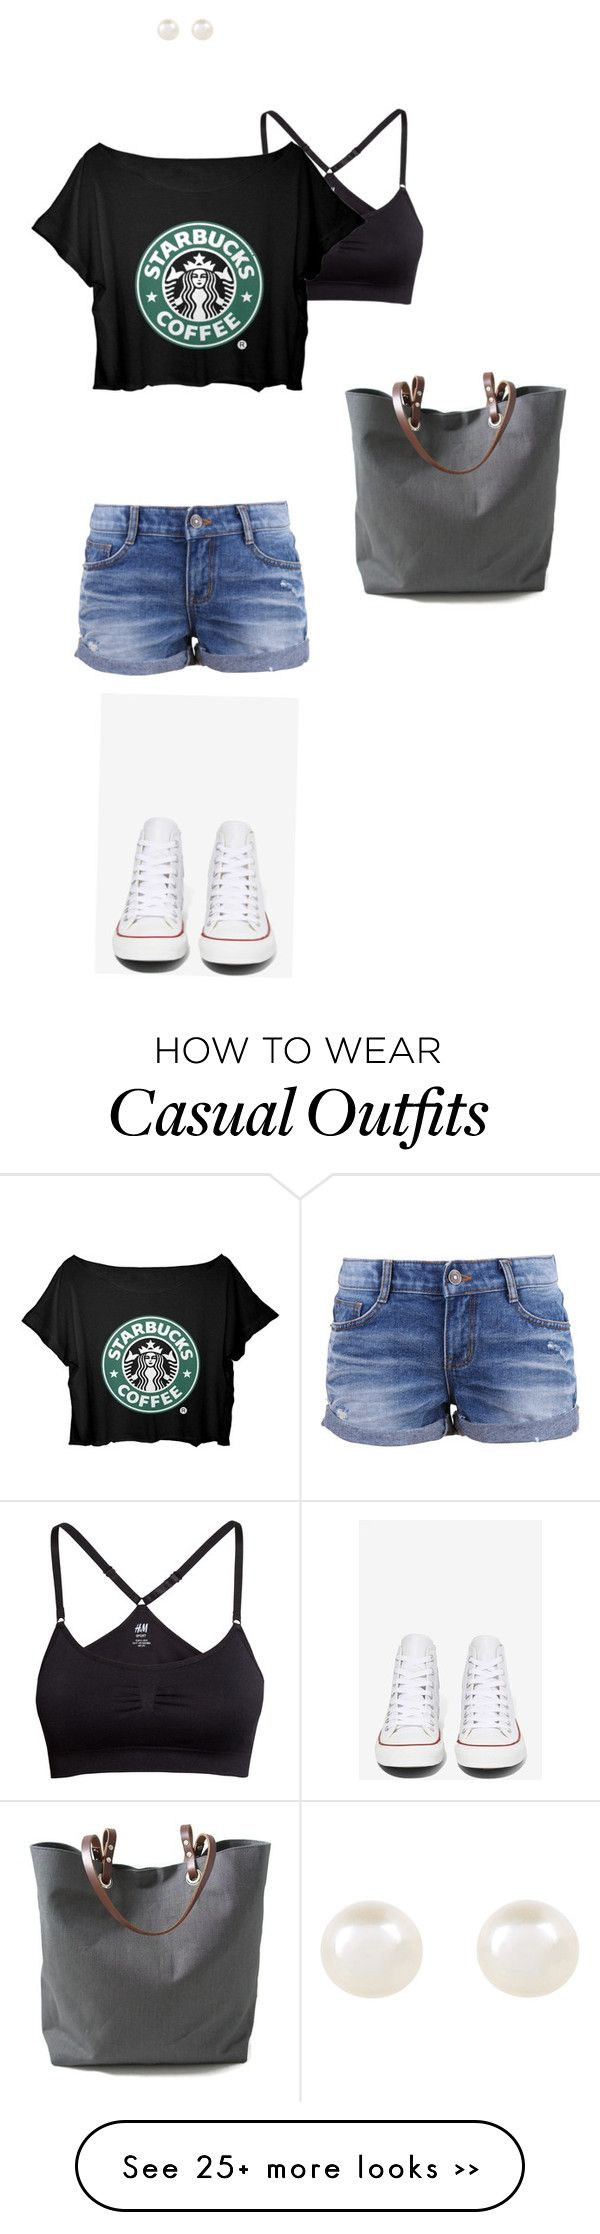 """Teenage casual"" by serenagaylord on Polyvore"